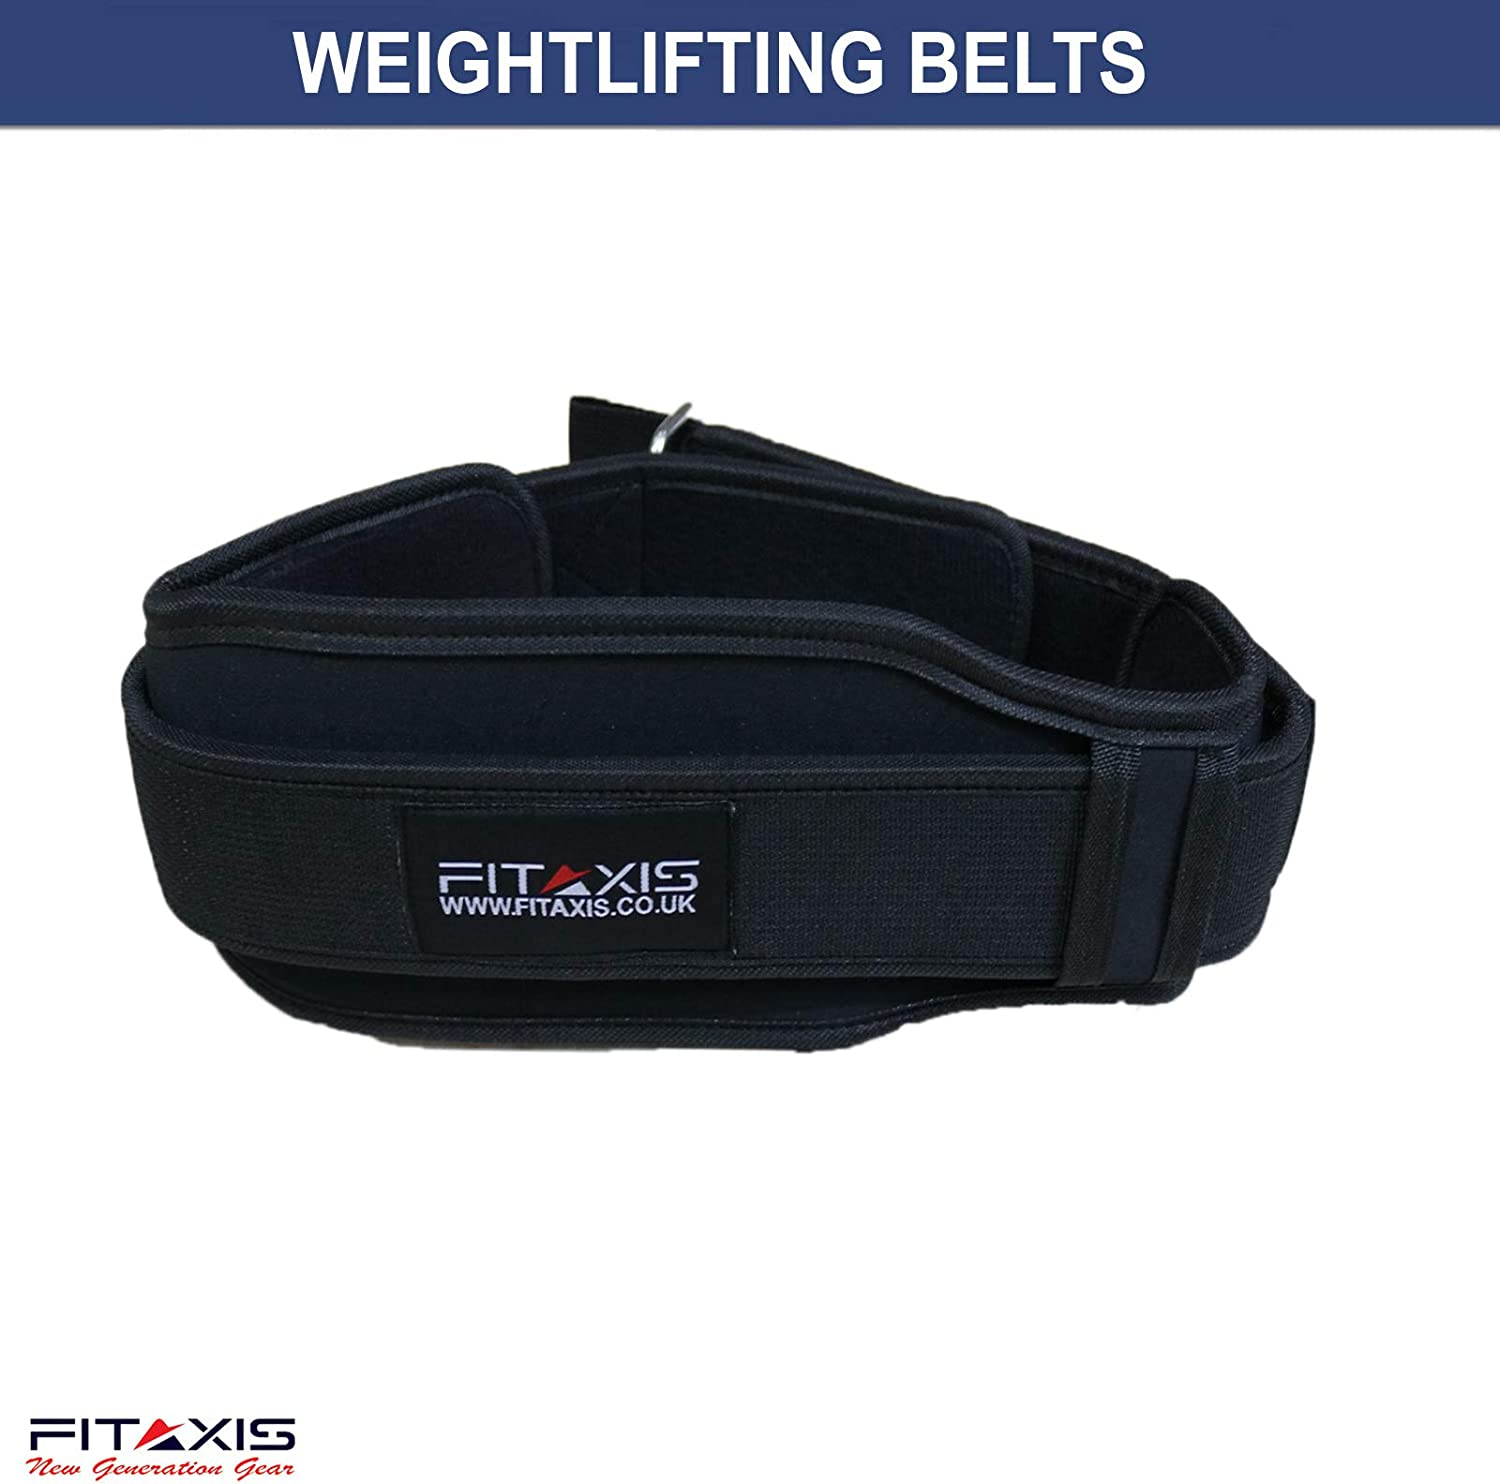 FITAXIS Weight Lifting Belt Double Padded 5 inch Back Support for Gym Fitness Training Neoprene Back /& Core Support